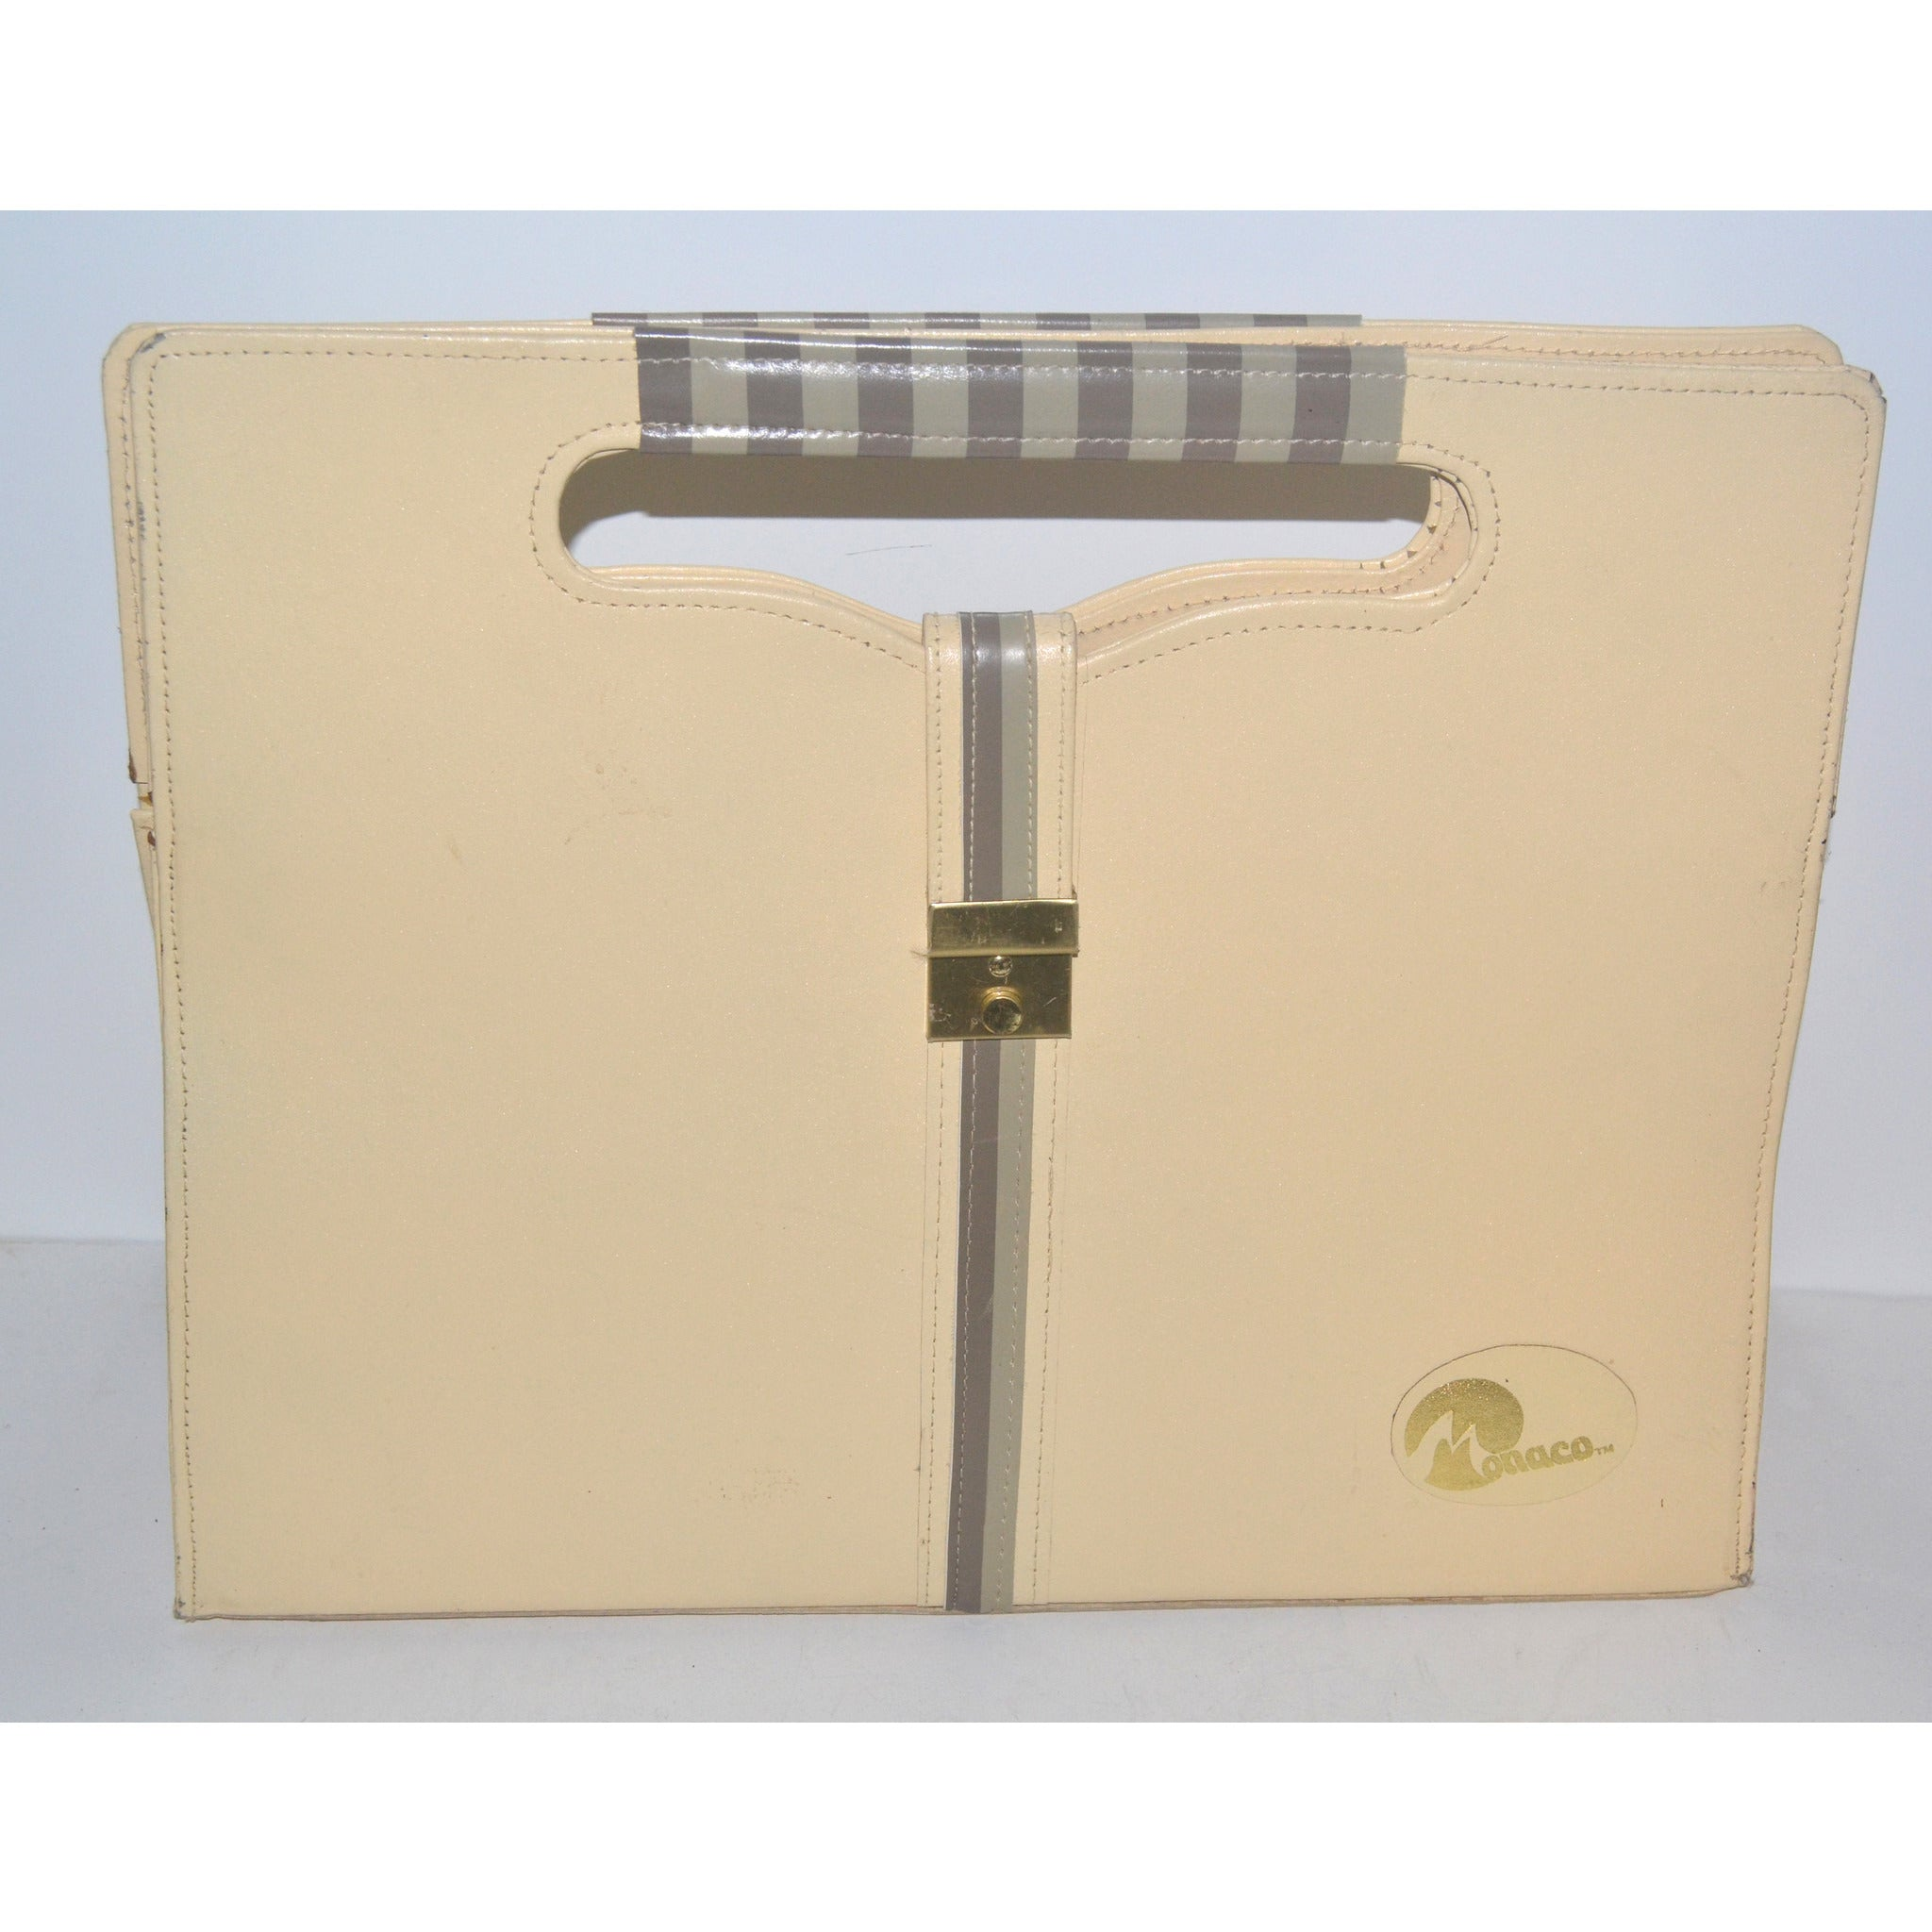 Vintage Chic Cream Leather Square Purse By Monaco